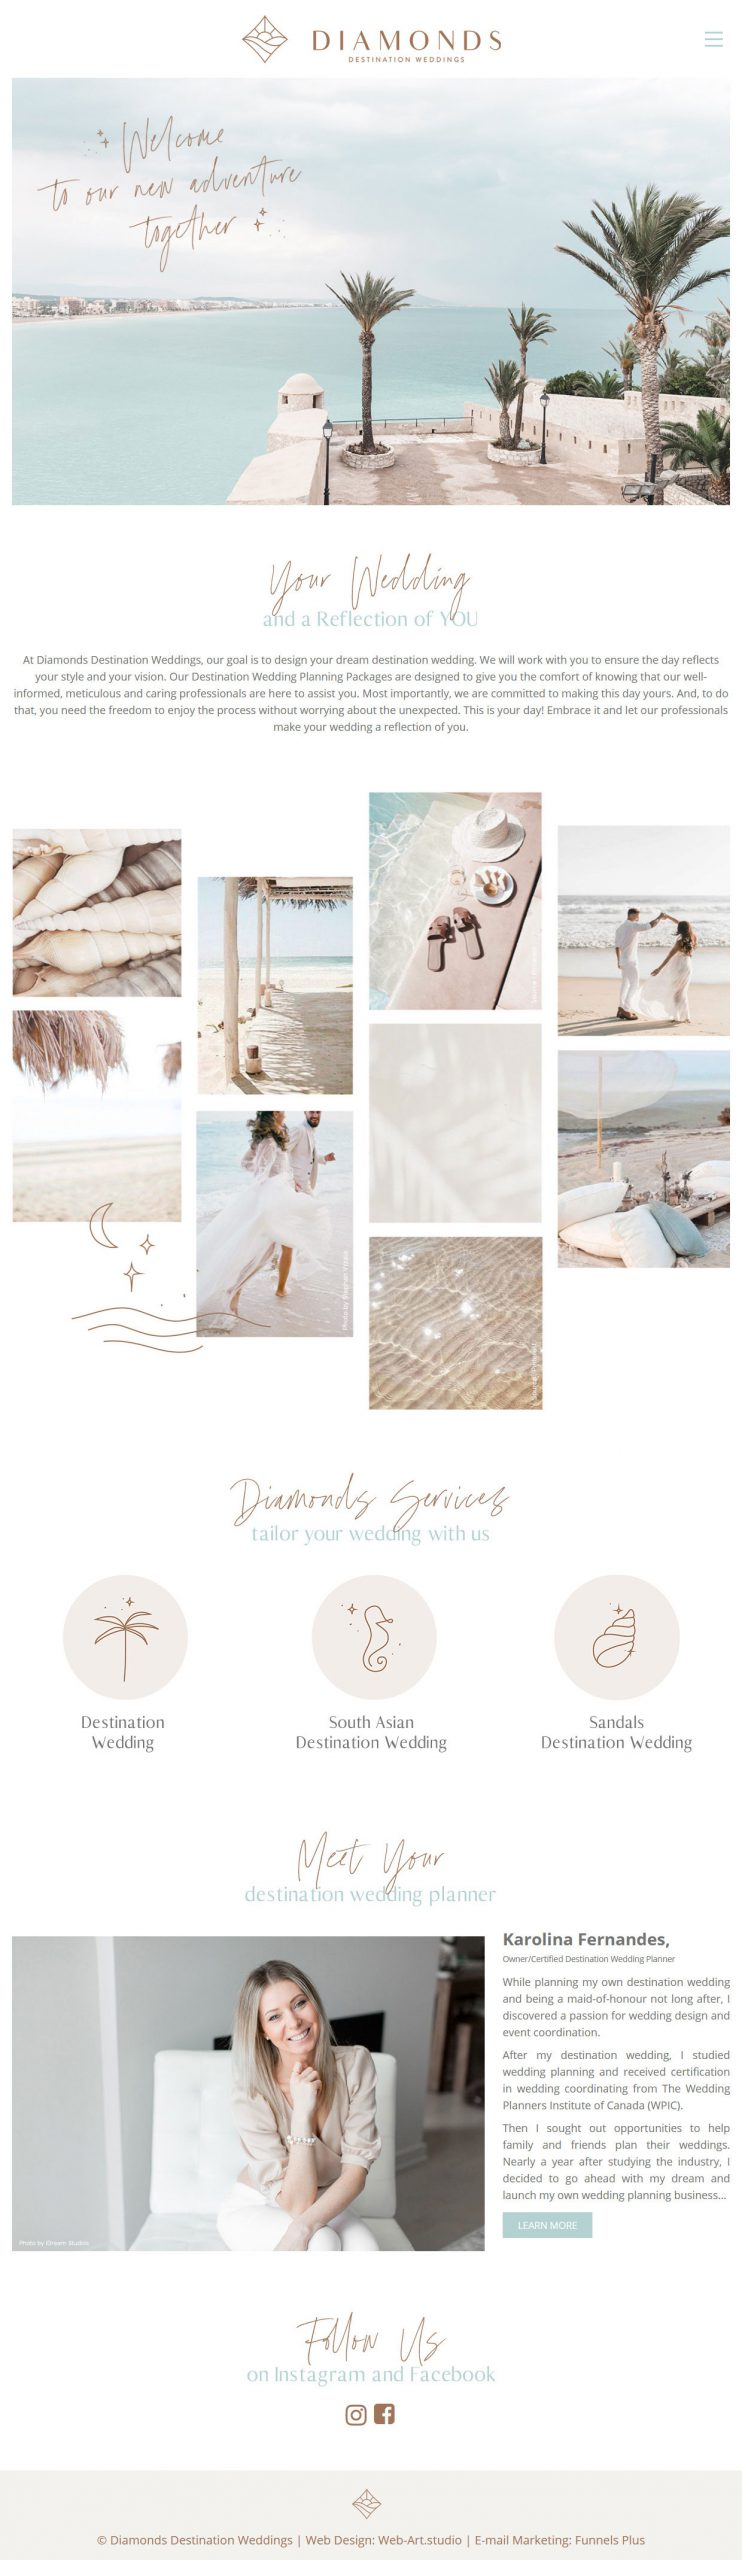 Diamonds Destination Weddings